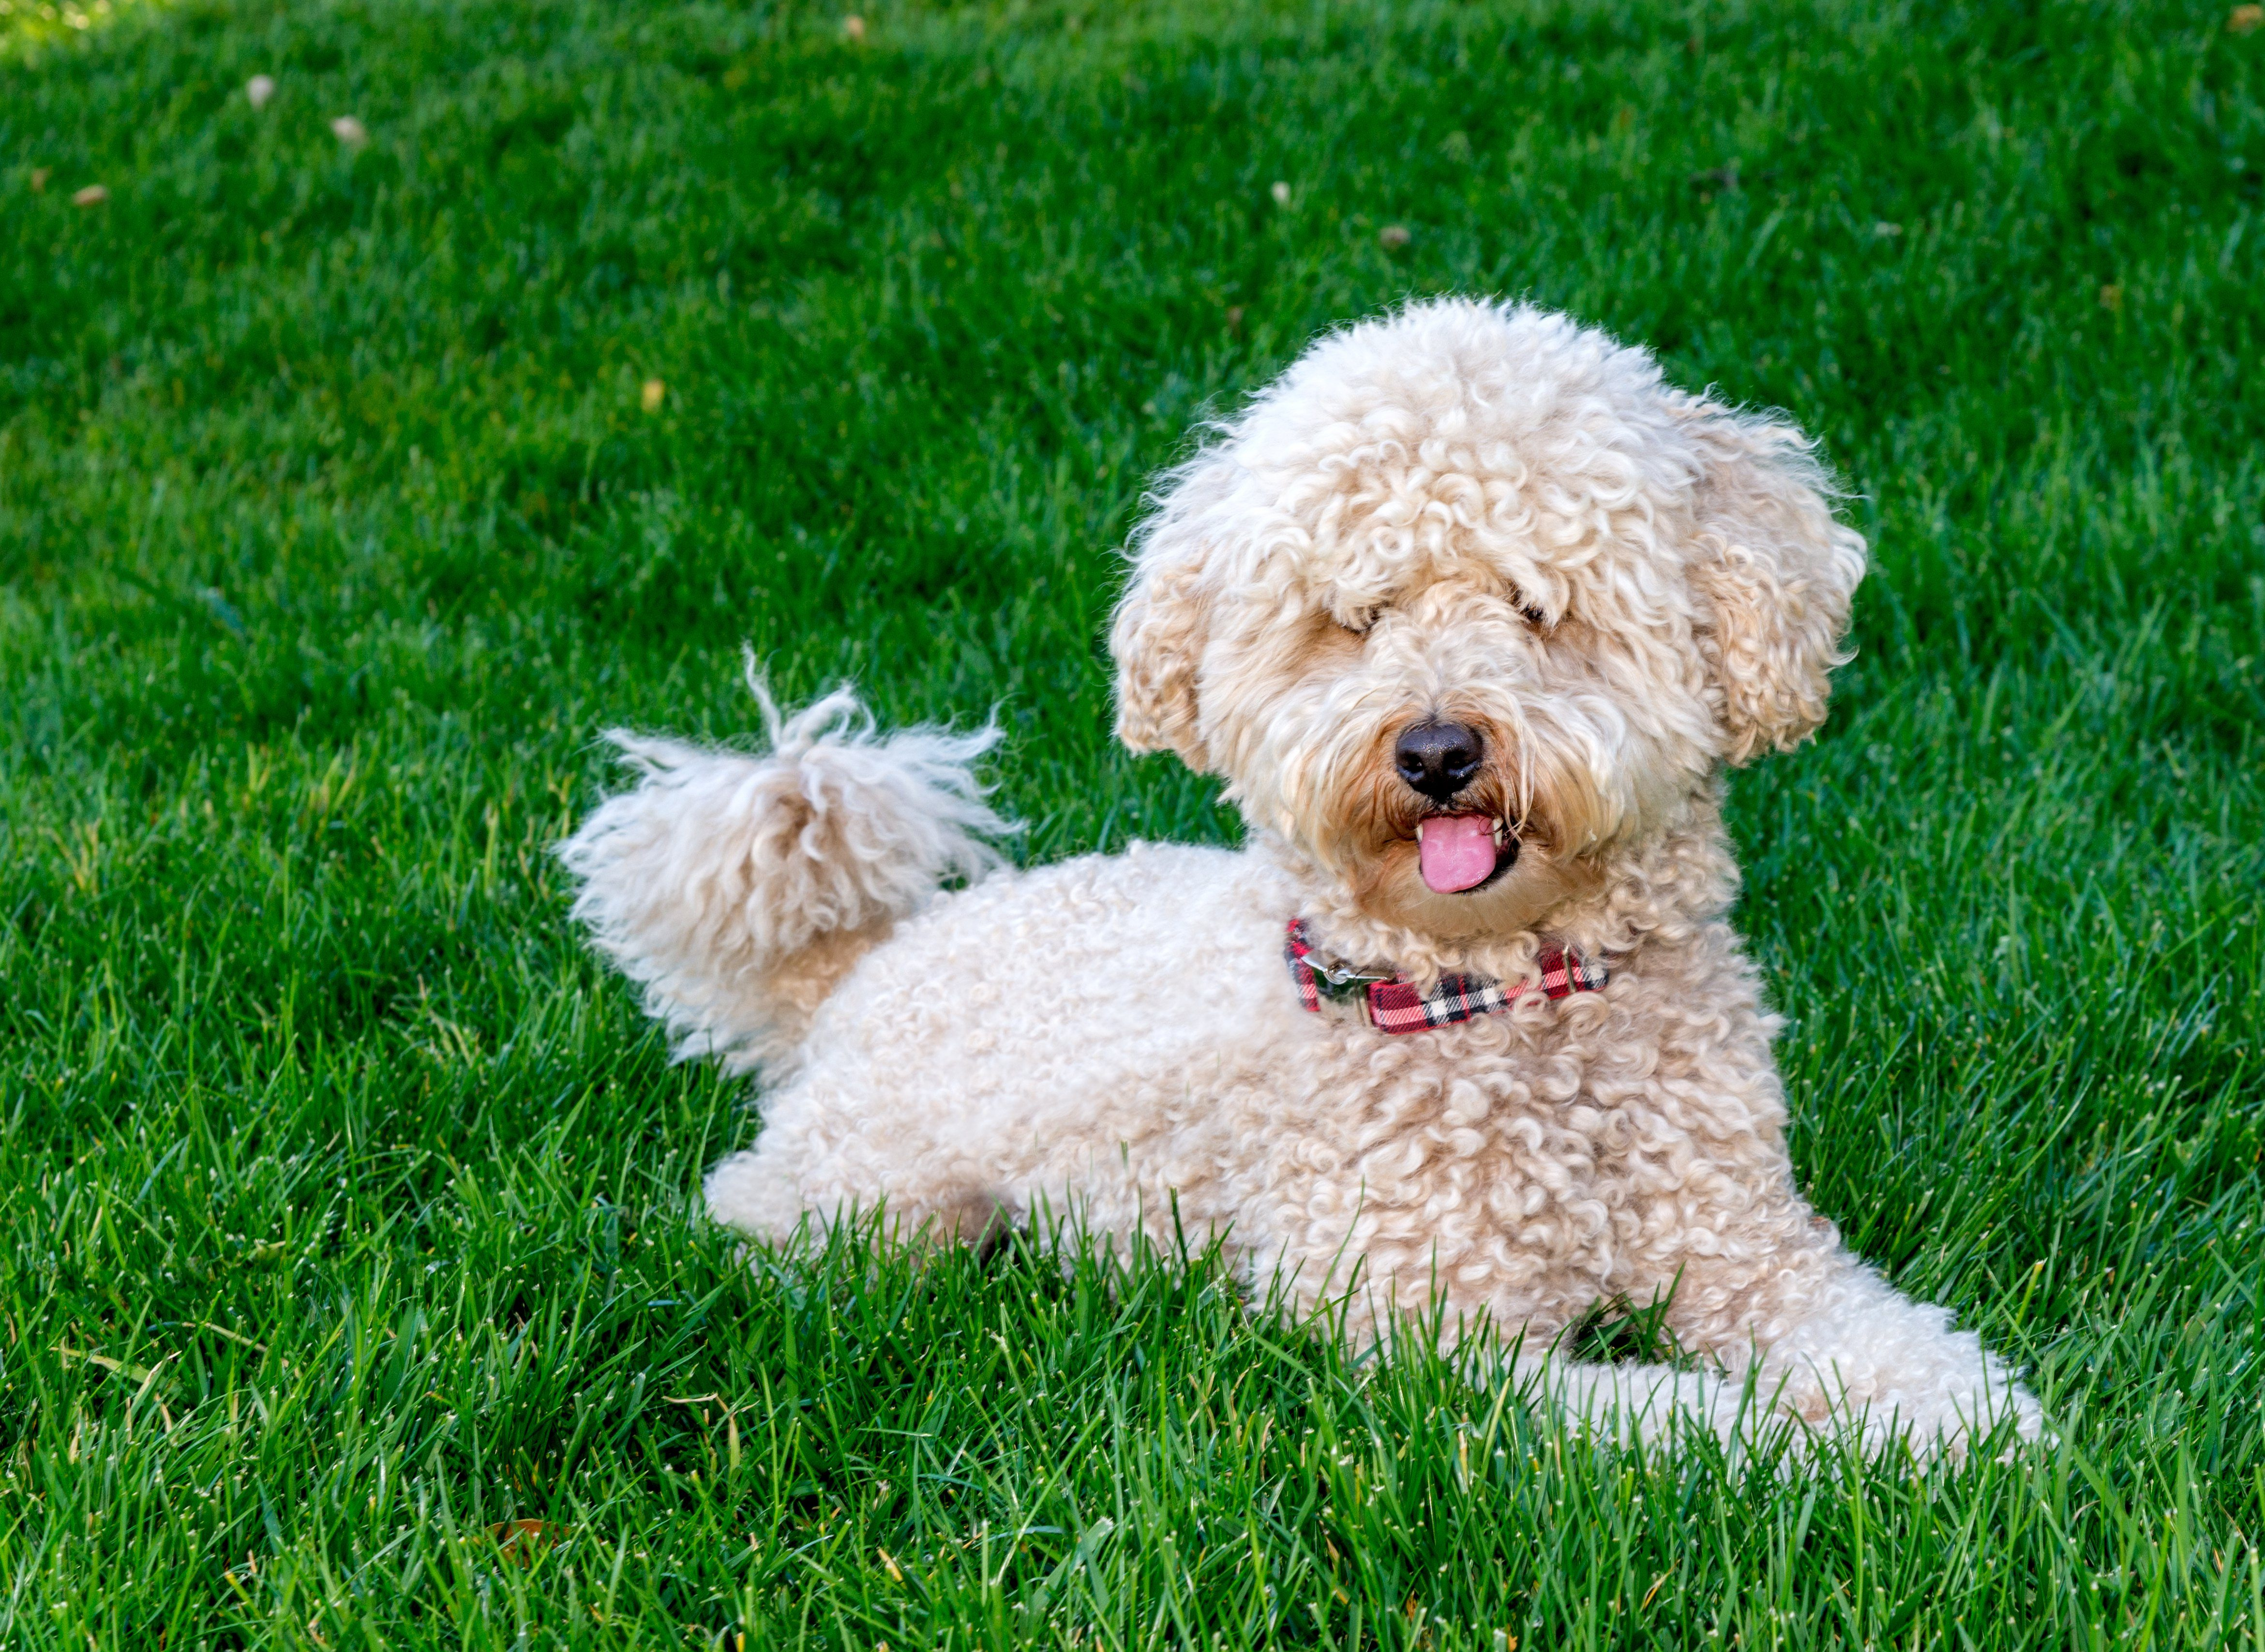 Goldendoodle dog sitting on grass field. The Goldendoodle is a mix hybrid breed between a poodle and a golden retriever